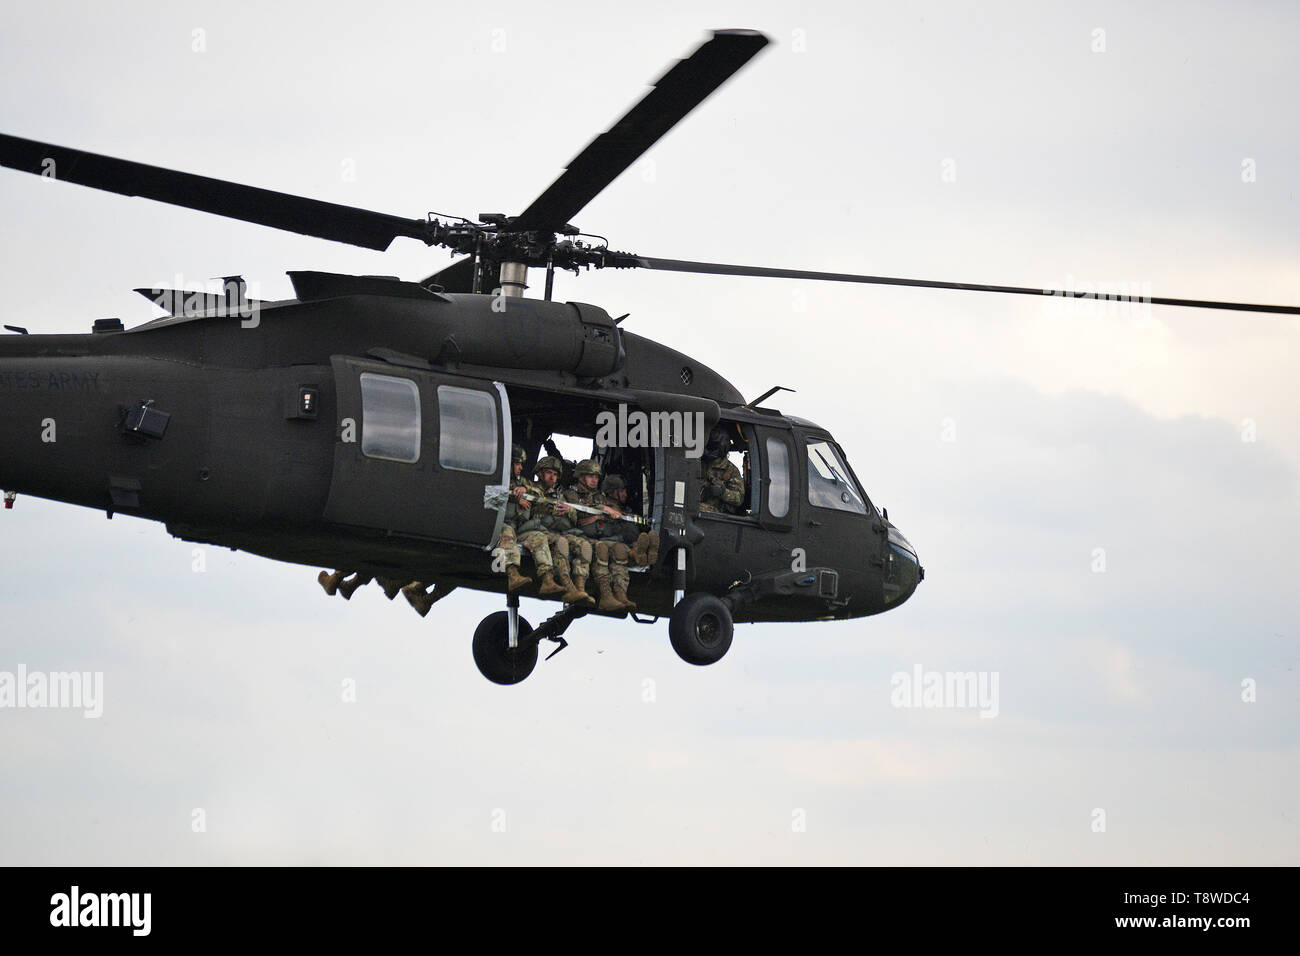 U.S. Army Paratroopers assigned to 54th Brigade Engineer Battalion, 173rd Airborne Brigade, on board from a 12th Combat Aviation Brigade UH-60 Black Hawk helicopter, at Juliet Drop Zone, Pordenone, Italy, during airborne operation, May 9, 2019. The 173rd Airborne Brigade is the U.S. Army's Contingency Response Force in Europe, capable of projecting ready forces anywhere in the U.S. European, Africa or Central Commands' areas of responsibility. (U.S. Army's Photos by Paolo Bovo) - Stock Image